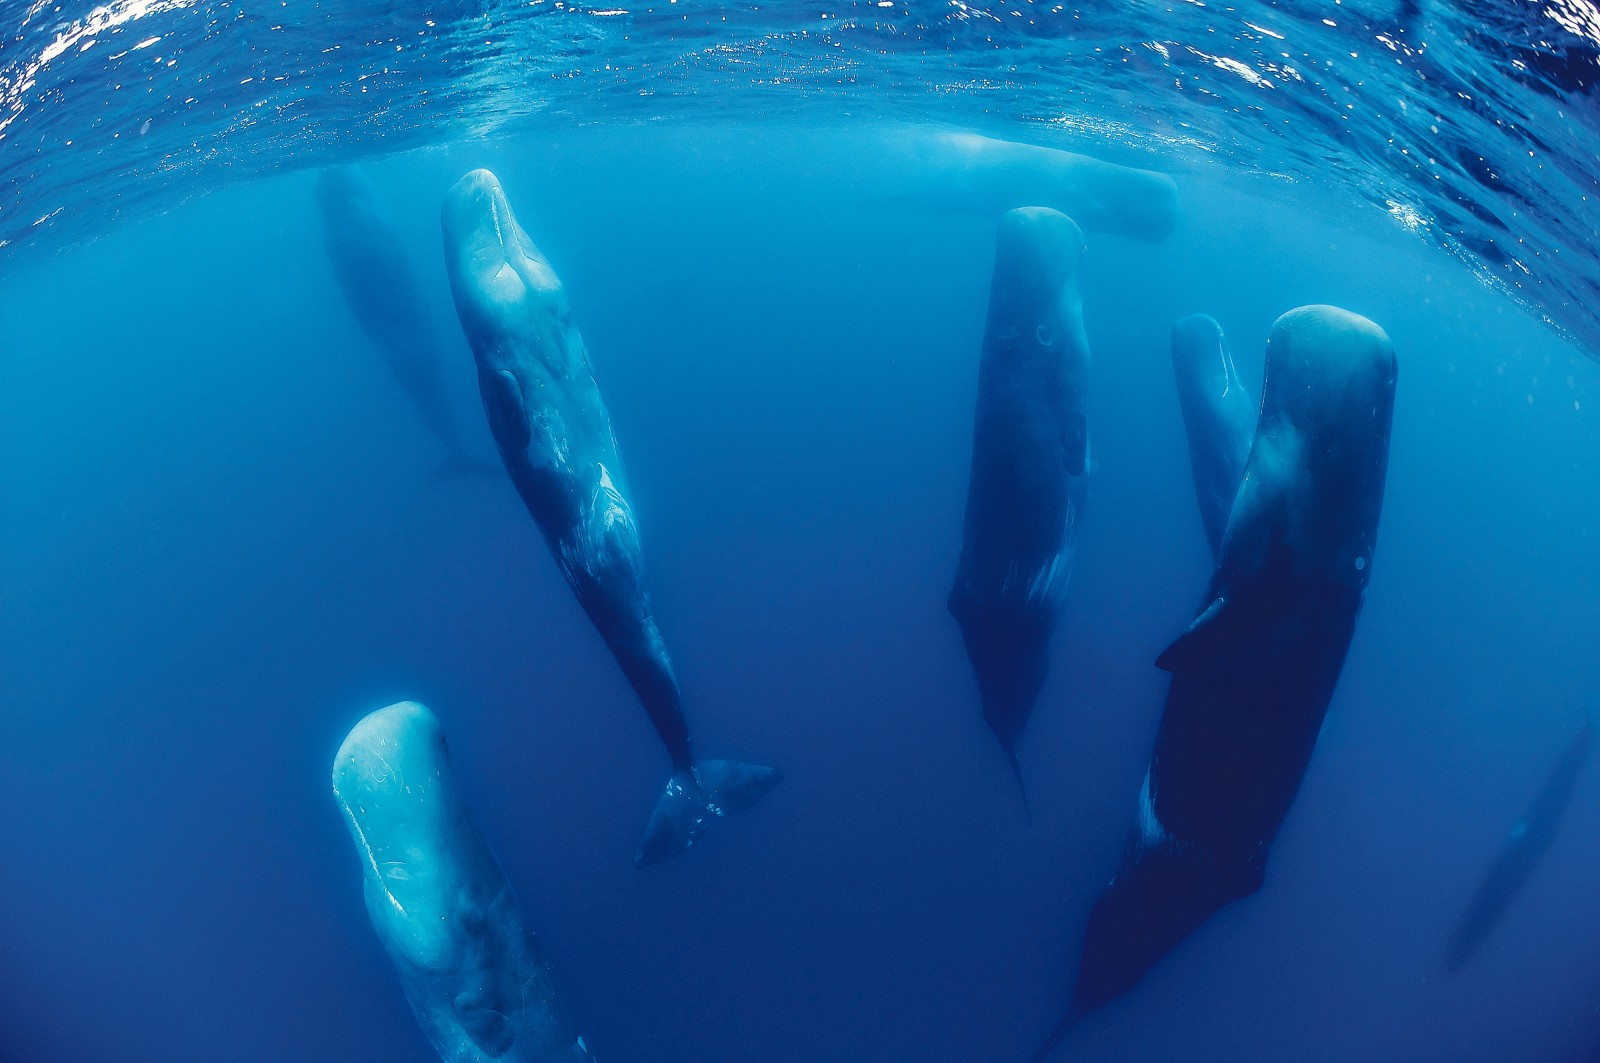 Sperm whales often rest in an upright position, and in close proximity to each other. Clustering may function as a defence against surprise attacks by predators, but it is just as likely to be a way of reinforcing group bonds and maintaining 'social capital'. magnus lundgren/nature picture library